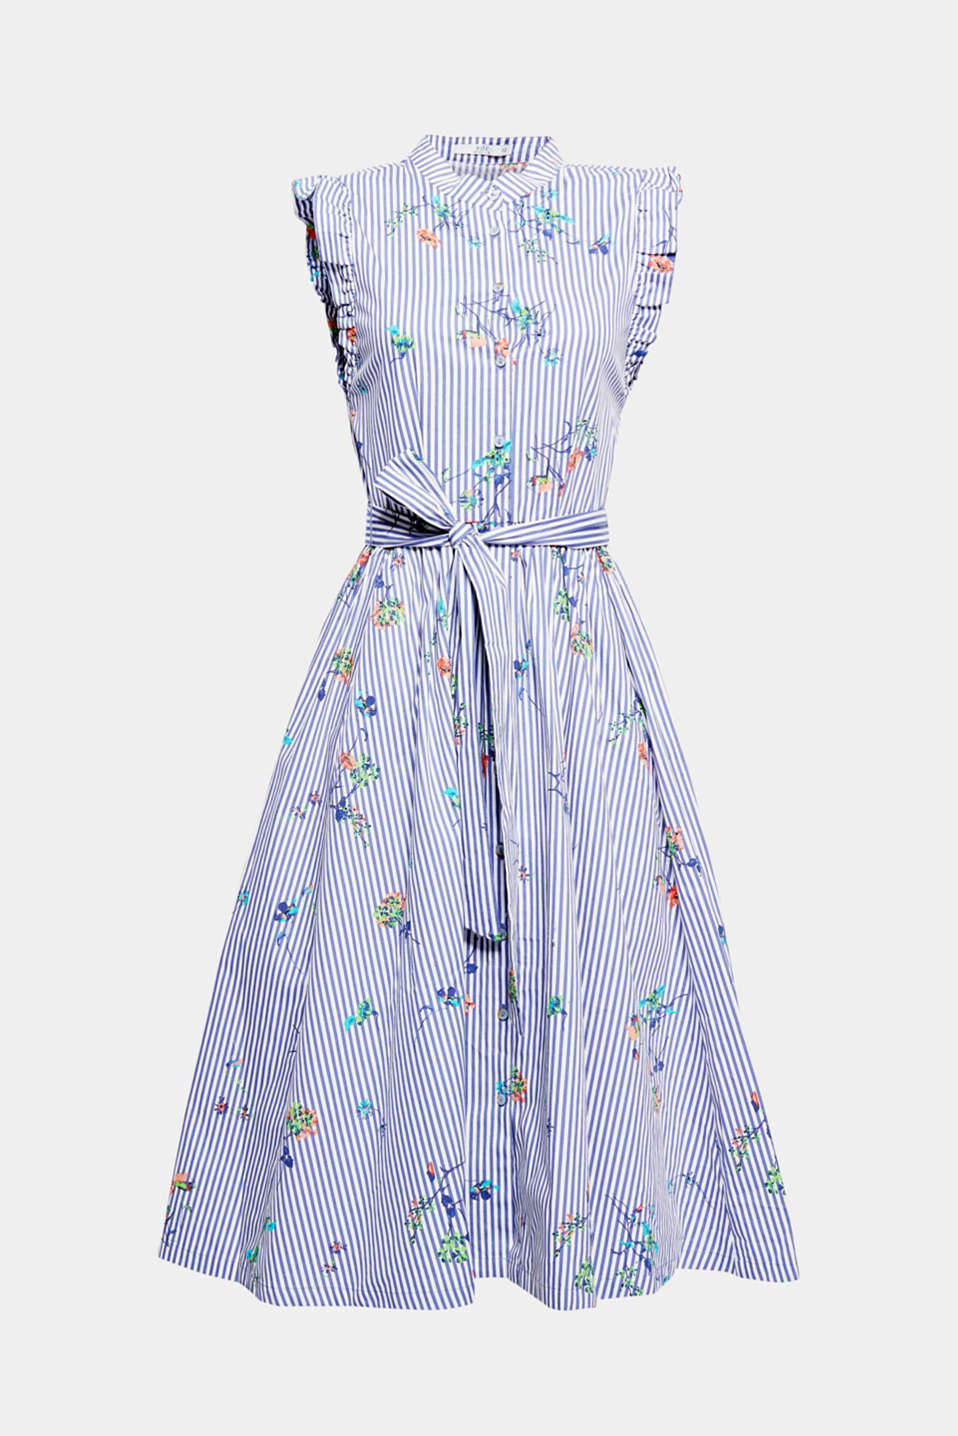 An ultra feminine, swirling, flared silhouette, delicate frilled sleeves and a fresh, striped flower print give this dress its unmistakable charm.